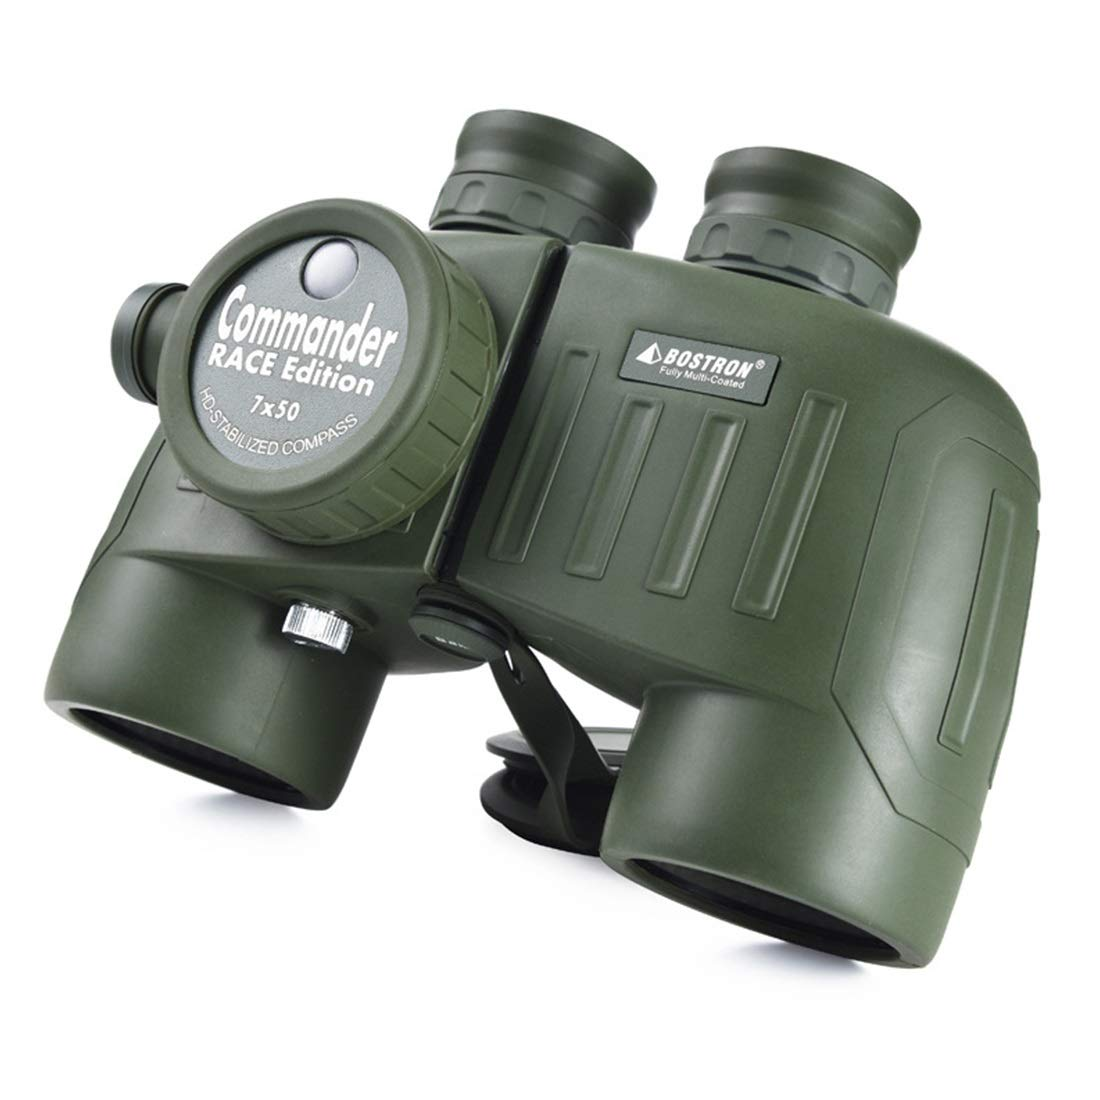 ZGQA-GQA 7x50 Compact Fogproof Binoculars for Kids Adults Compass Folding Telescope for Bird Watching Camping and Sports Games with Carrying Bag for Adult by ZGQA-GQA